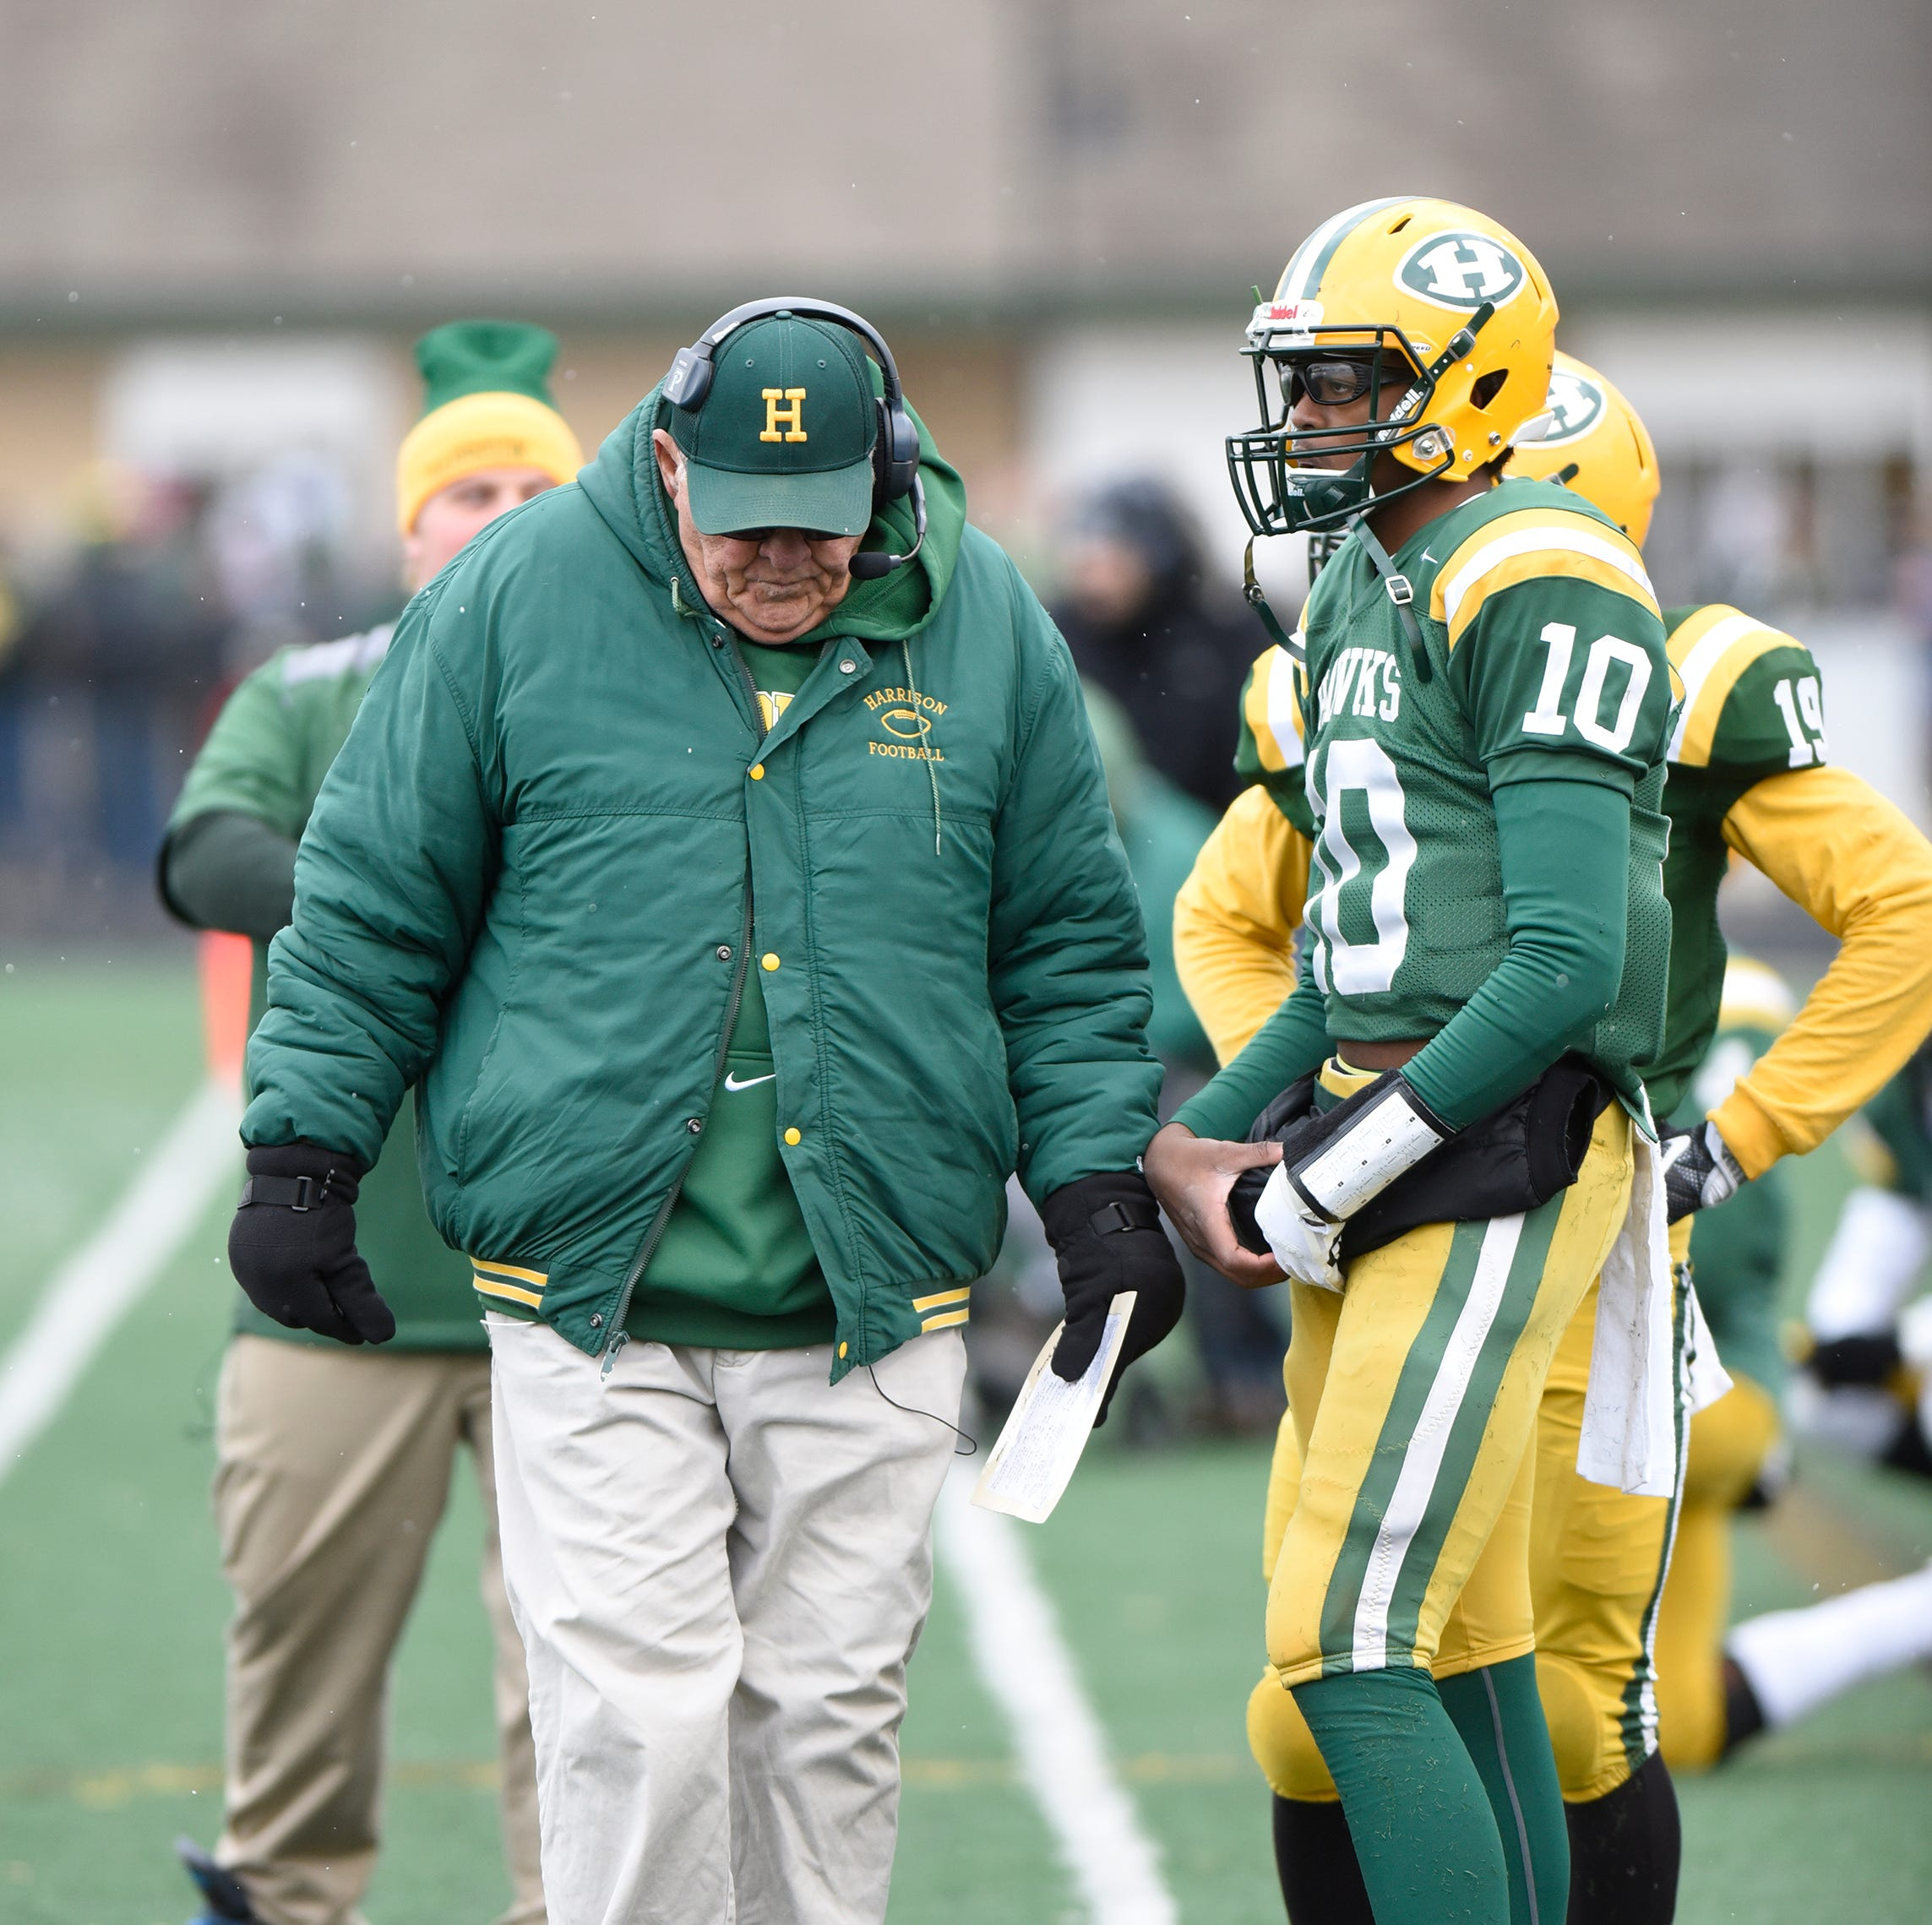 Farmington Harrison Head Coach John Herrington walks the sidelines near the end of the Division 4 regional final game won by Chelsea 21-14 - ending Herrington's and Harrison's storied football program.